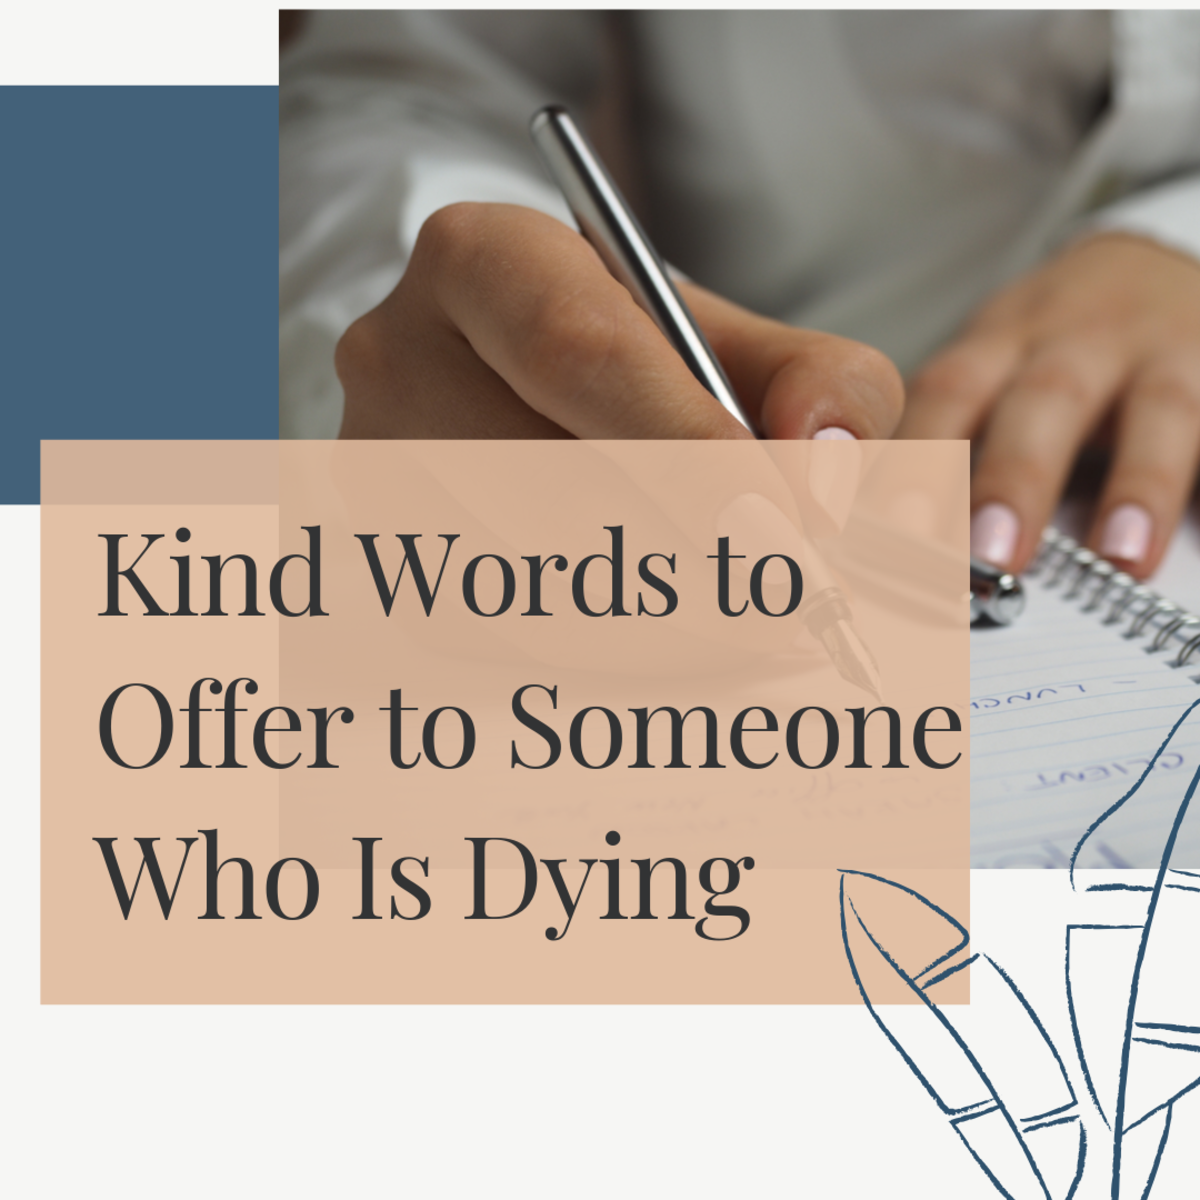 Kind Words for Someone Who Is Terminally Ill